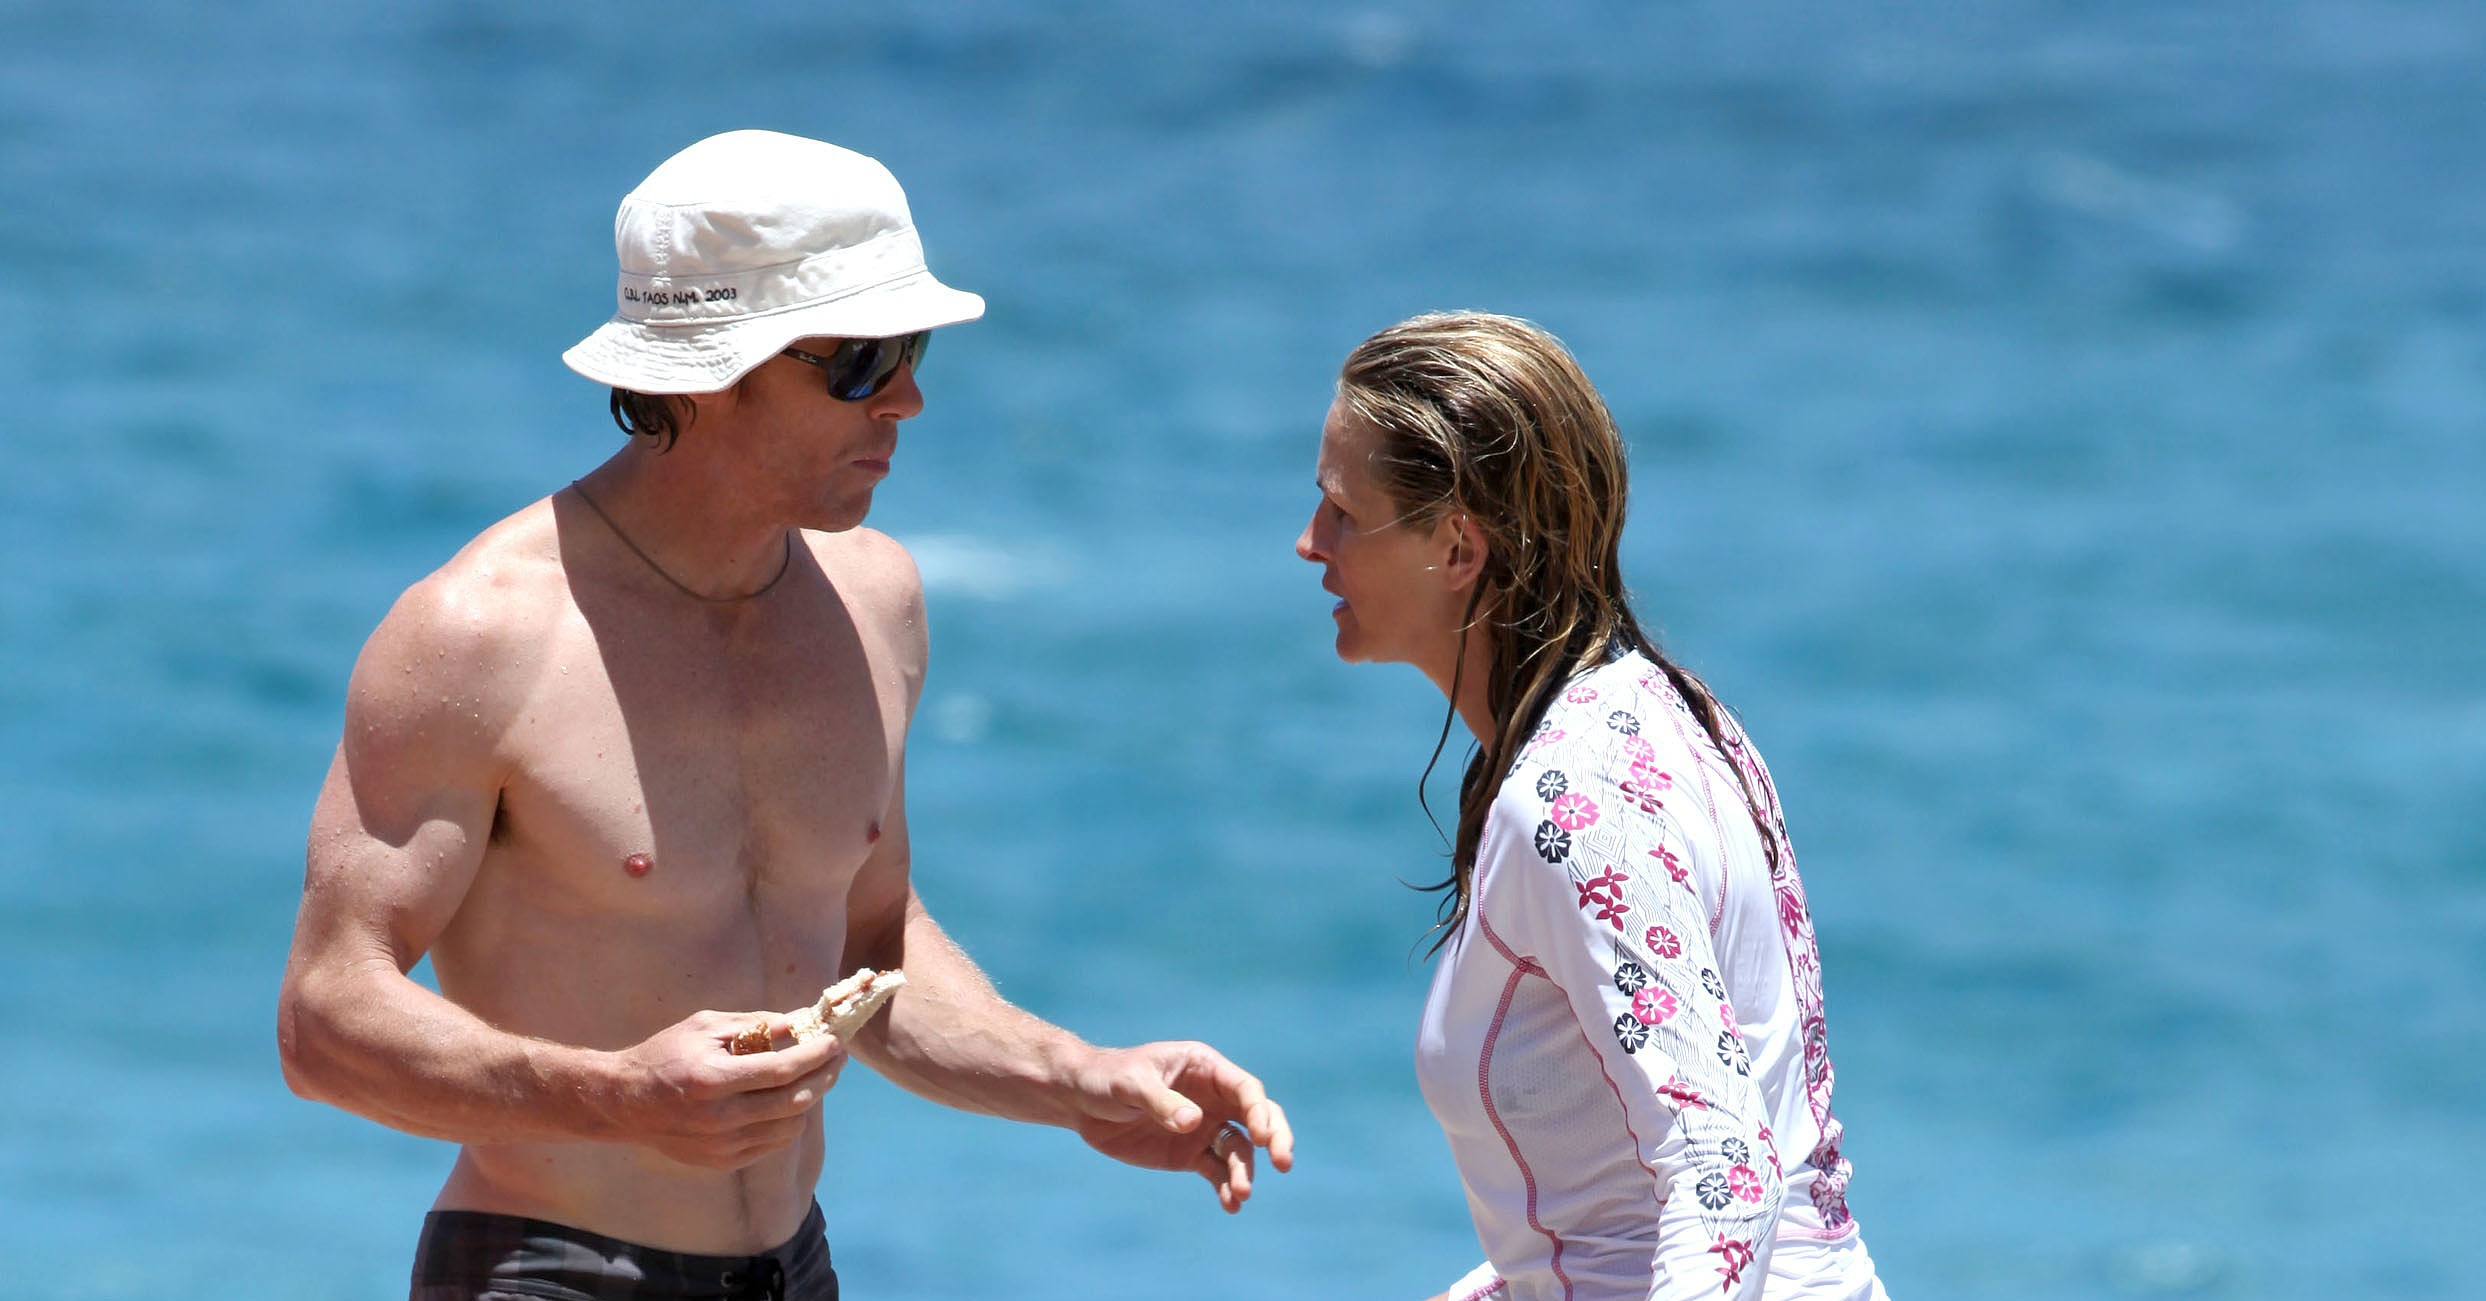 Shirtless Danny Moder On The Beach With Julia Roberts Julia Roberts Throws On Her Bikini To